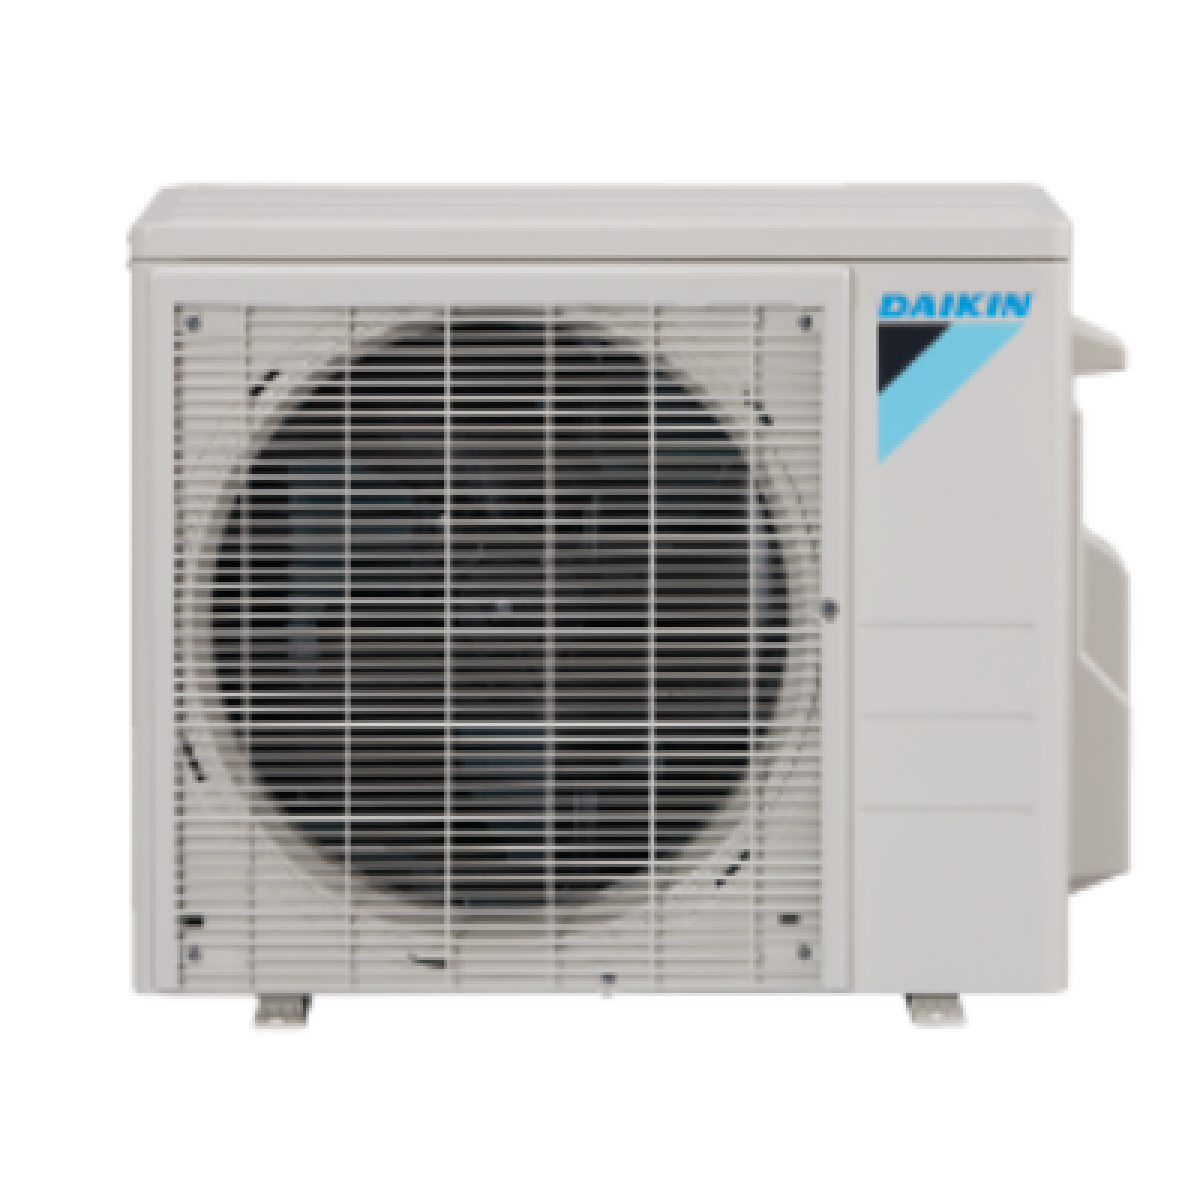 #1E82AD Daikin 2 Zone 18K BTU Heat Pump With Two (2) 9K BTU  Highly Rated 8659 Air Conditioning Equipment Pad wallpapers with 1200x1200 px on helpvideos.info - Air Conditioners, Air Coolers and more